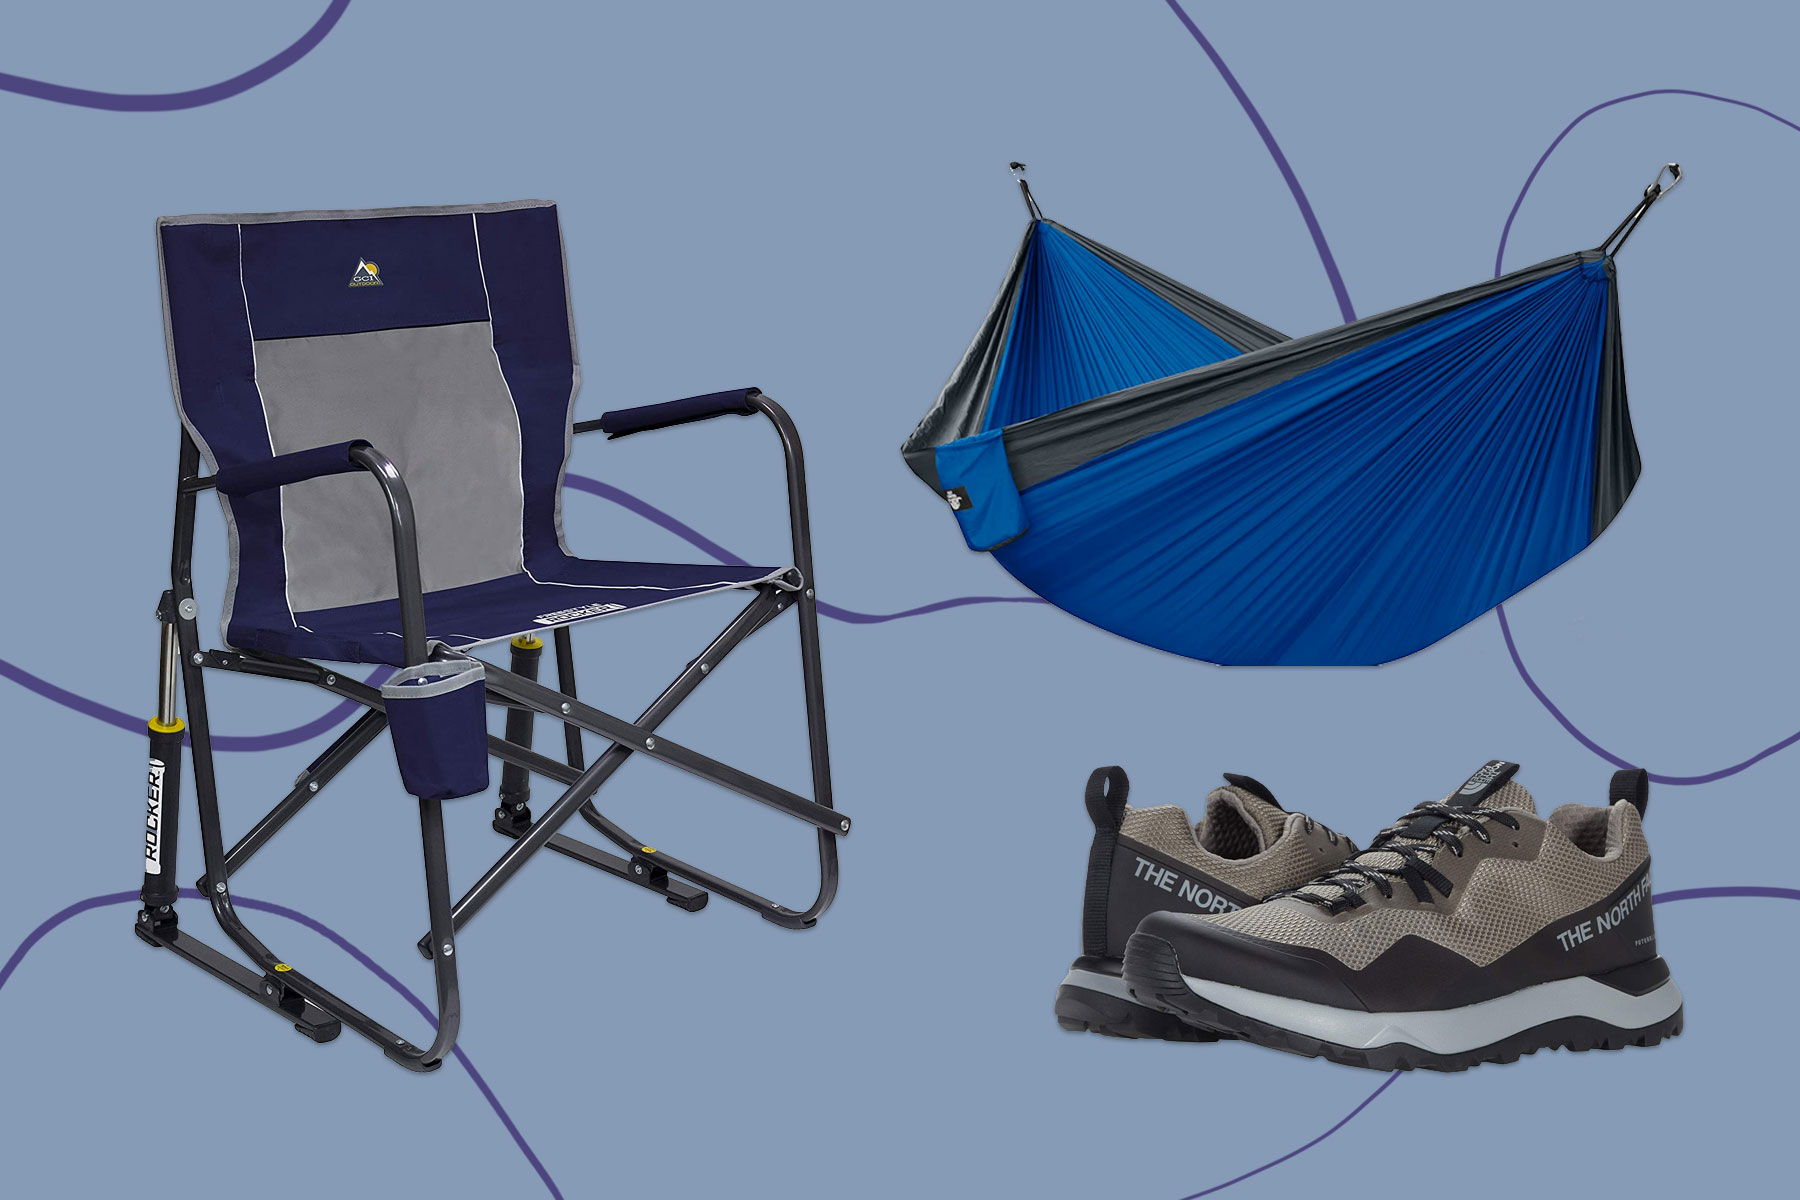 Camping chair, hammock, and hiking shoes